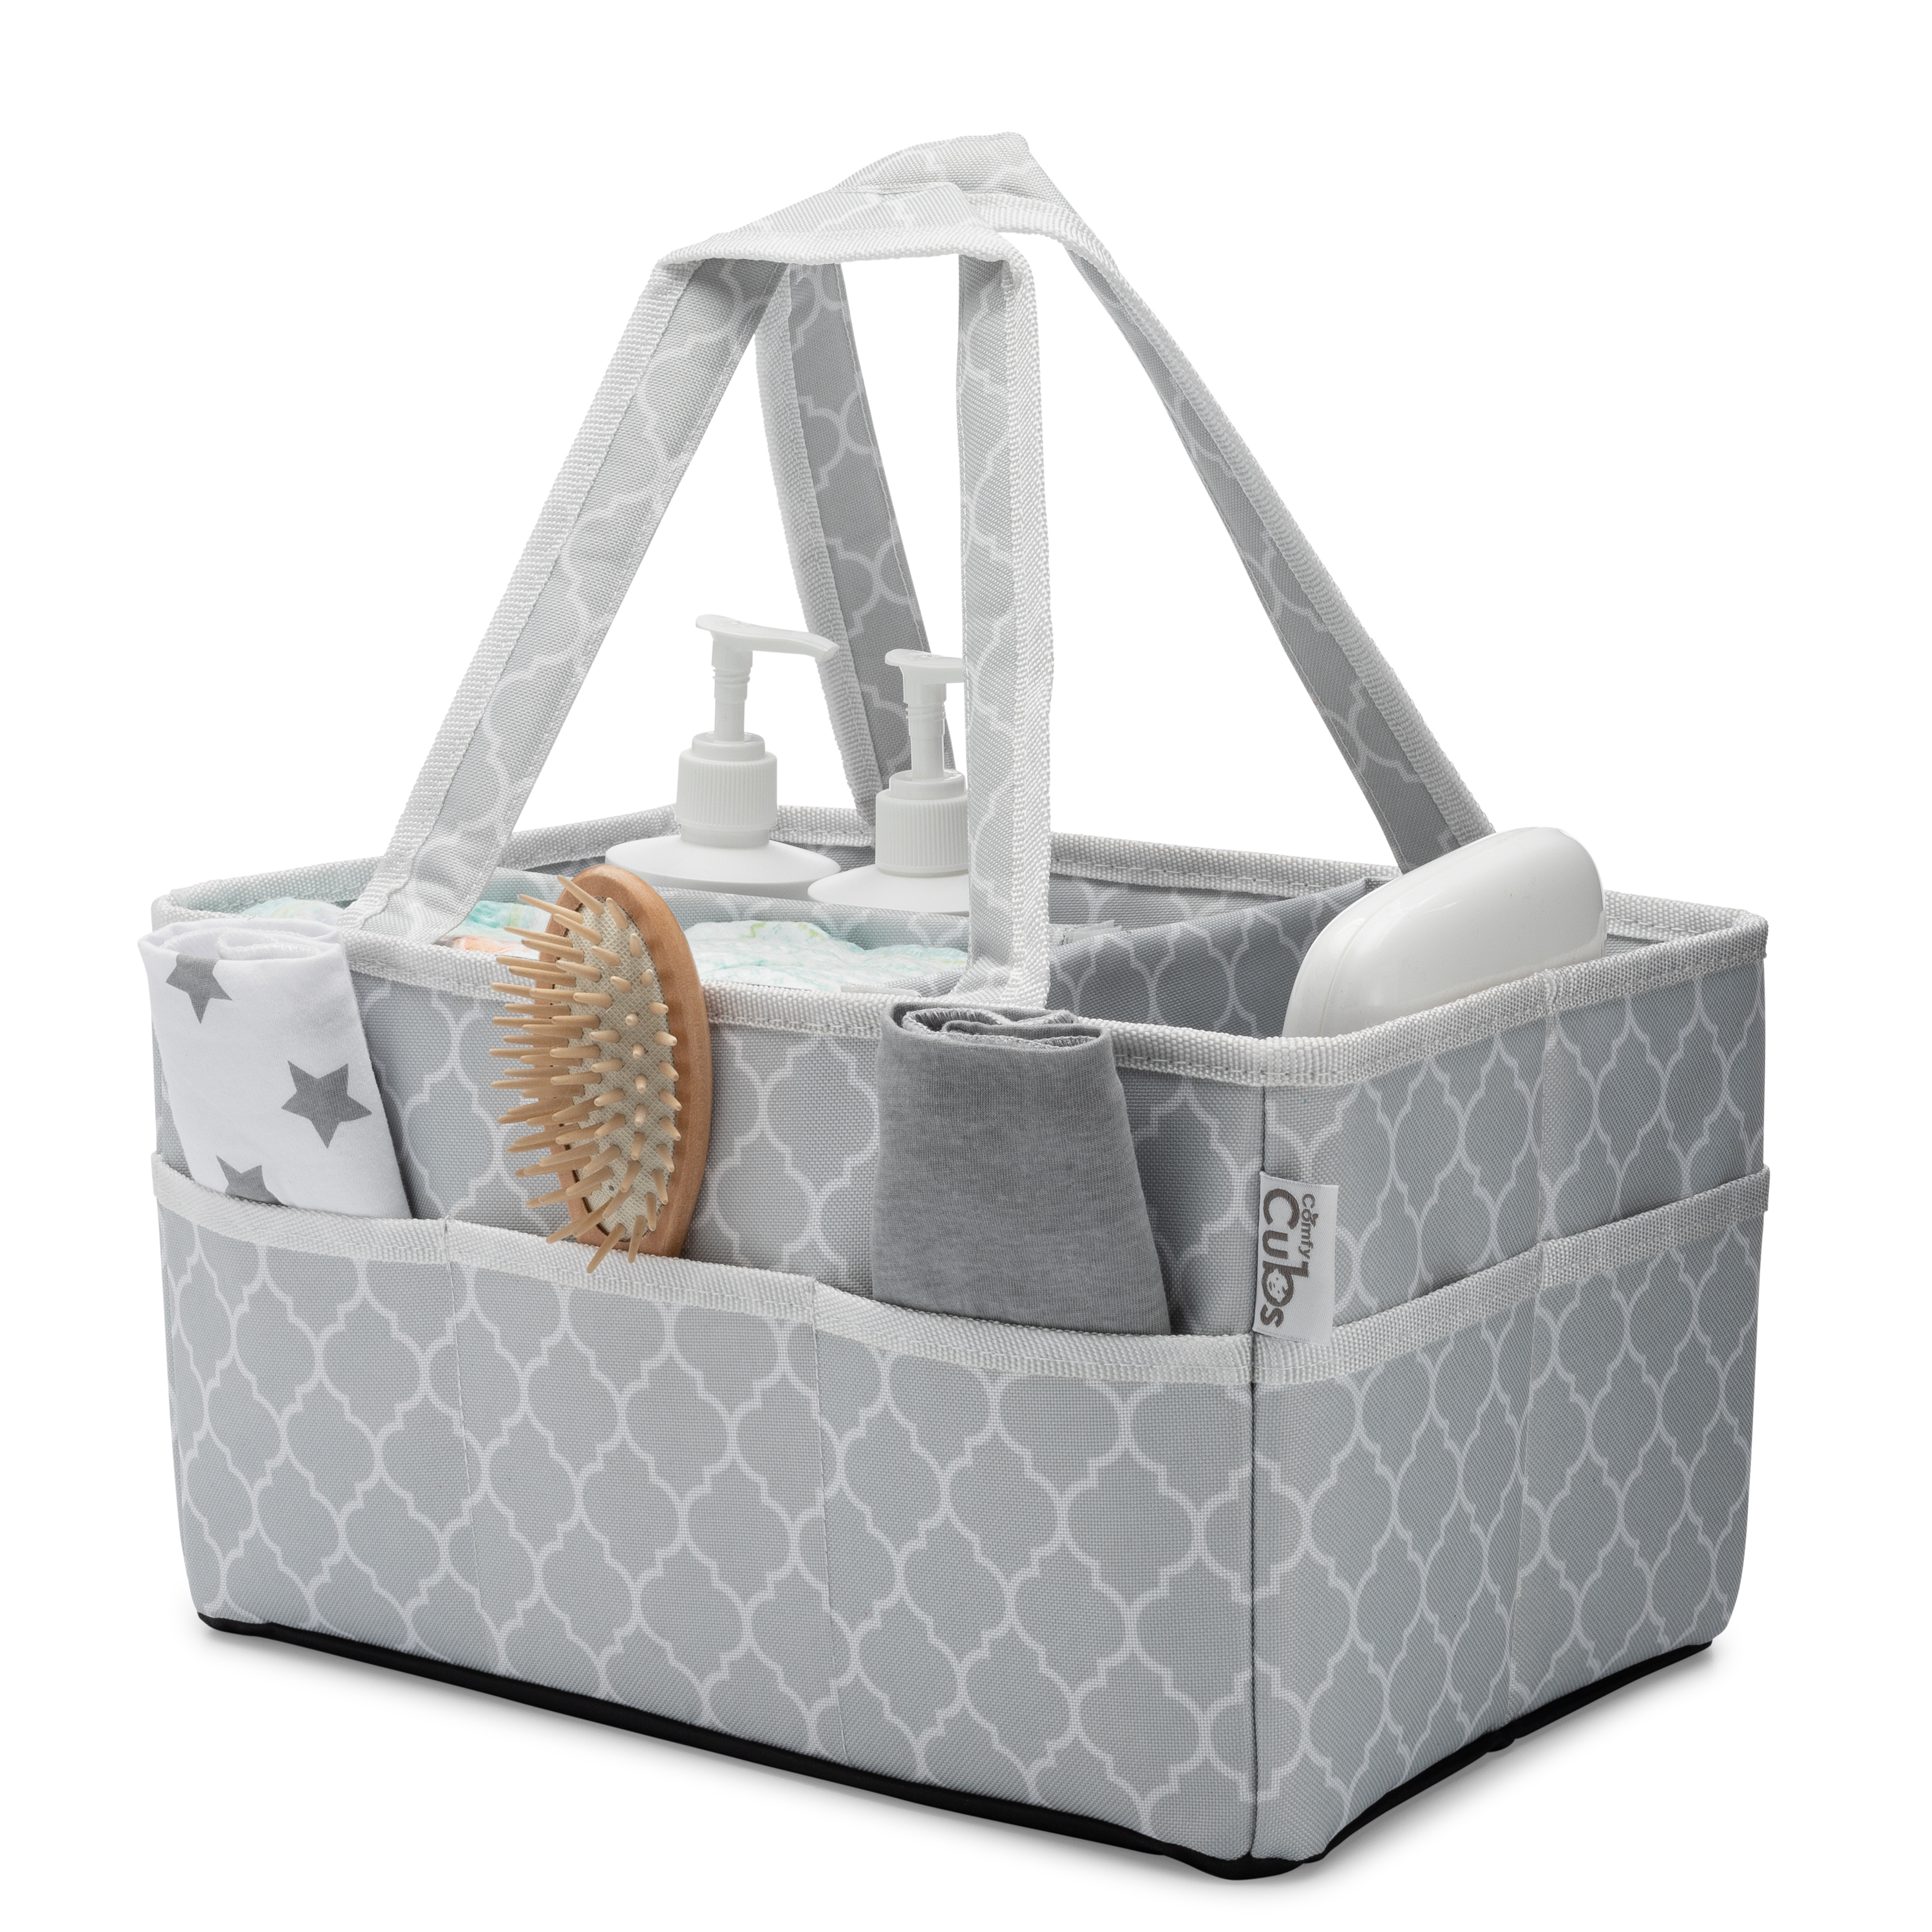 Portable Felt Nappy Basket Baby Wipes Bag WAWABOX Diaper Caddy Organizer Diaper Organizers with Changeable Compartments for Mom Newborn Kids Yellow